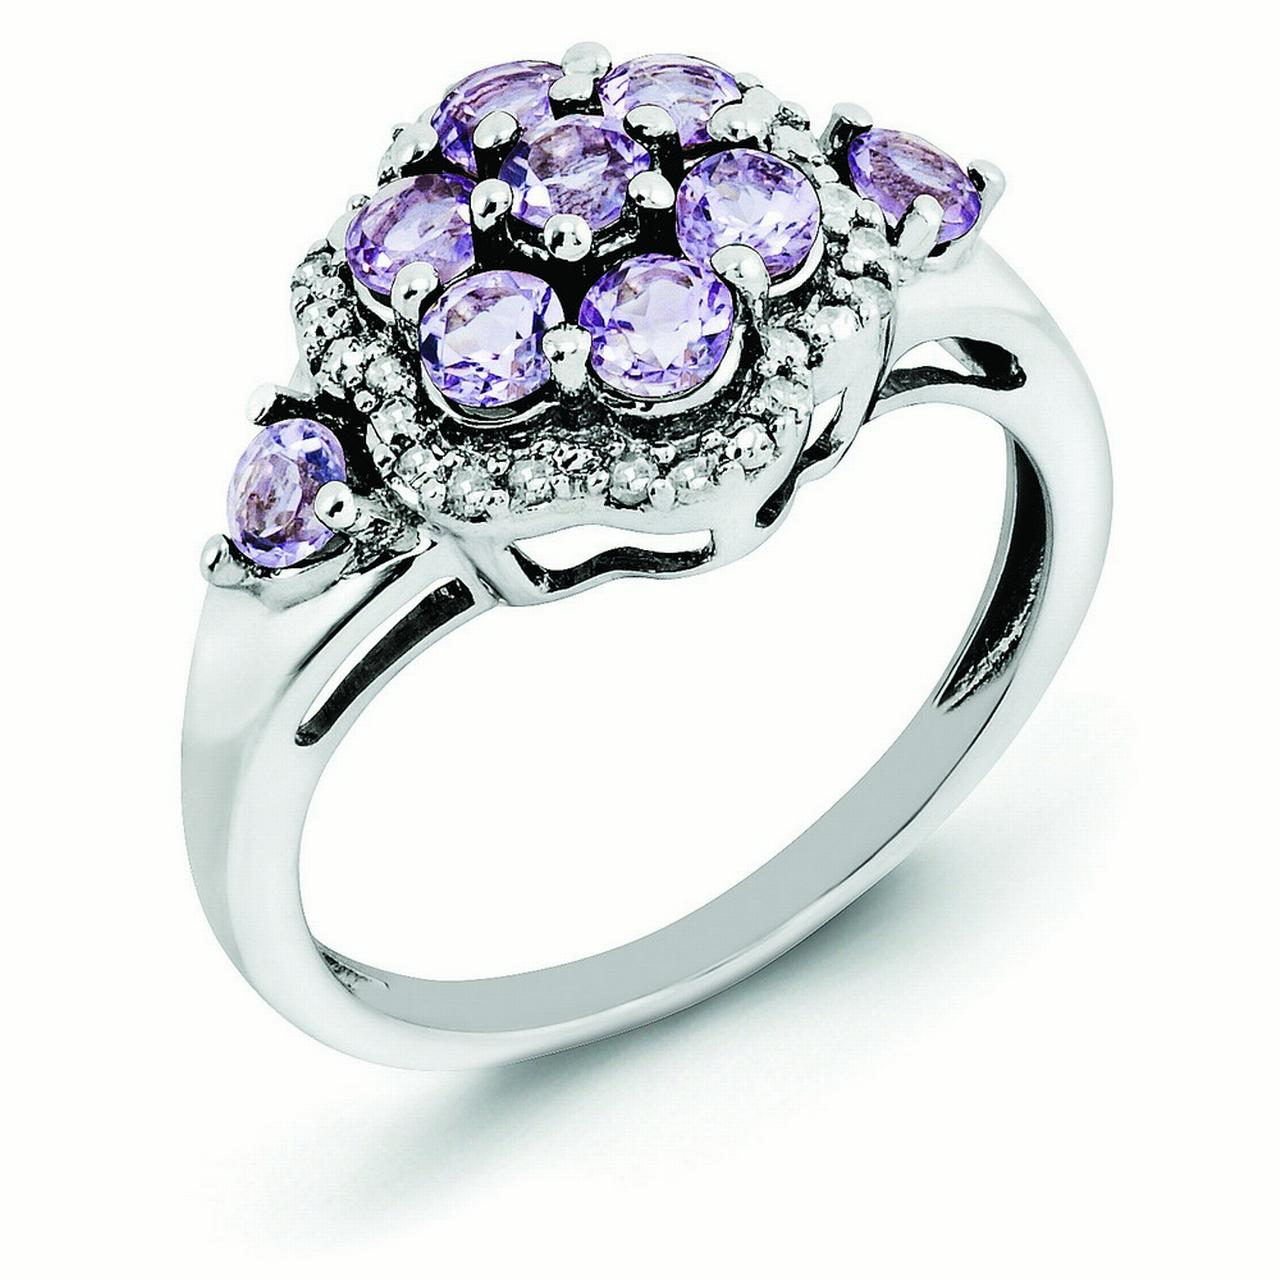 Sterling Silver Diamond and Pink Amethyst Ring Ring Size: 5 to 10 by Jewelryweb